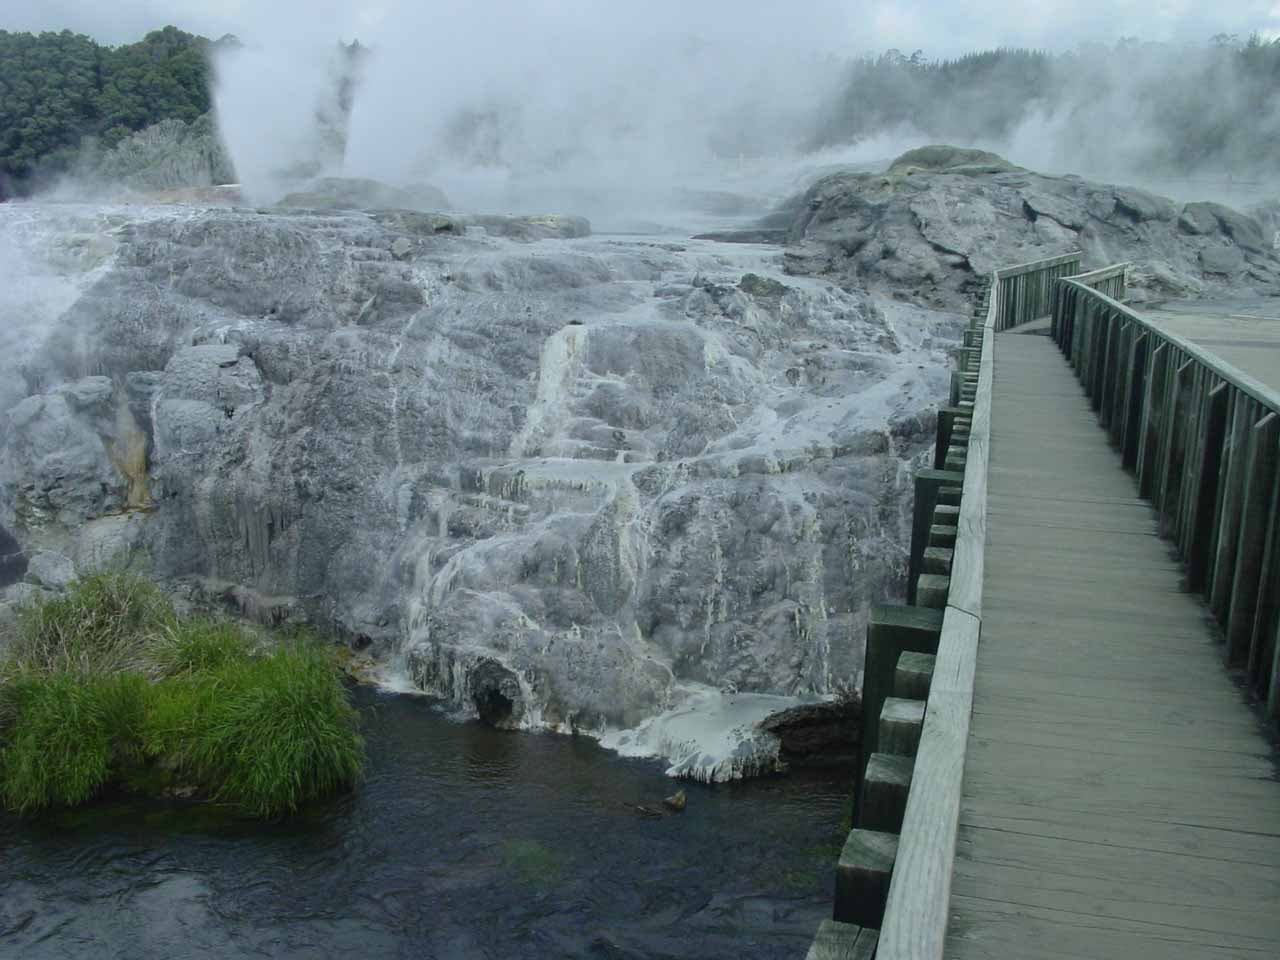 After visiting McLaren Falls and Marshall Falls, we would eventually settle in at Rotorua, where we checked out some geothermal reserves like Te Whakarewarewa